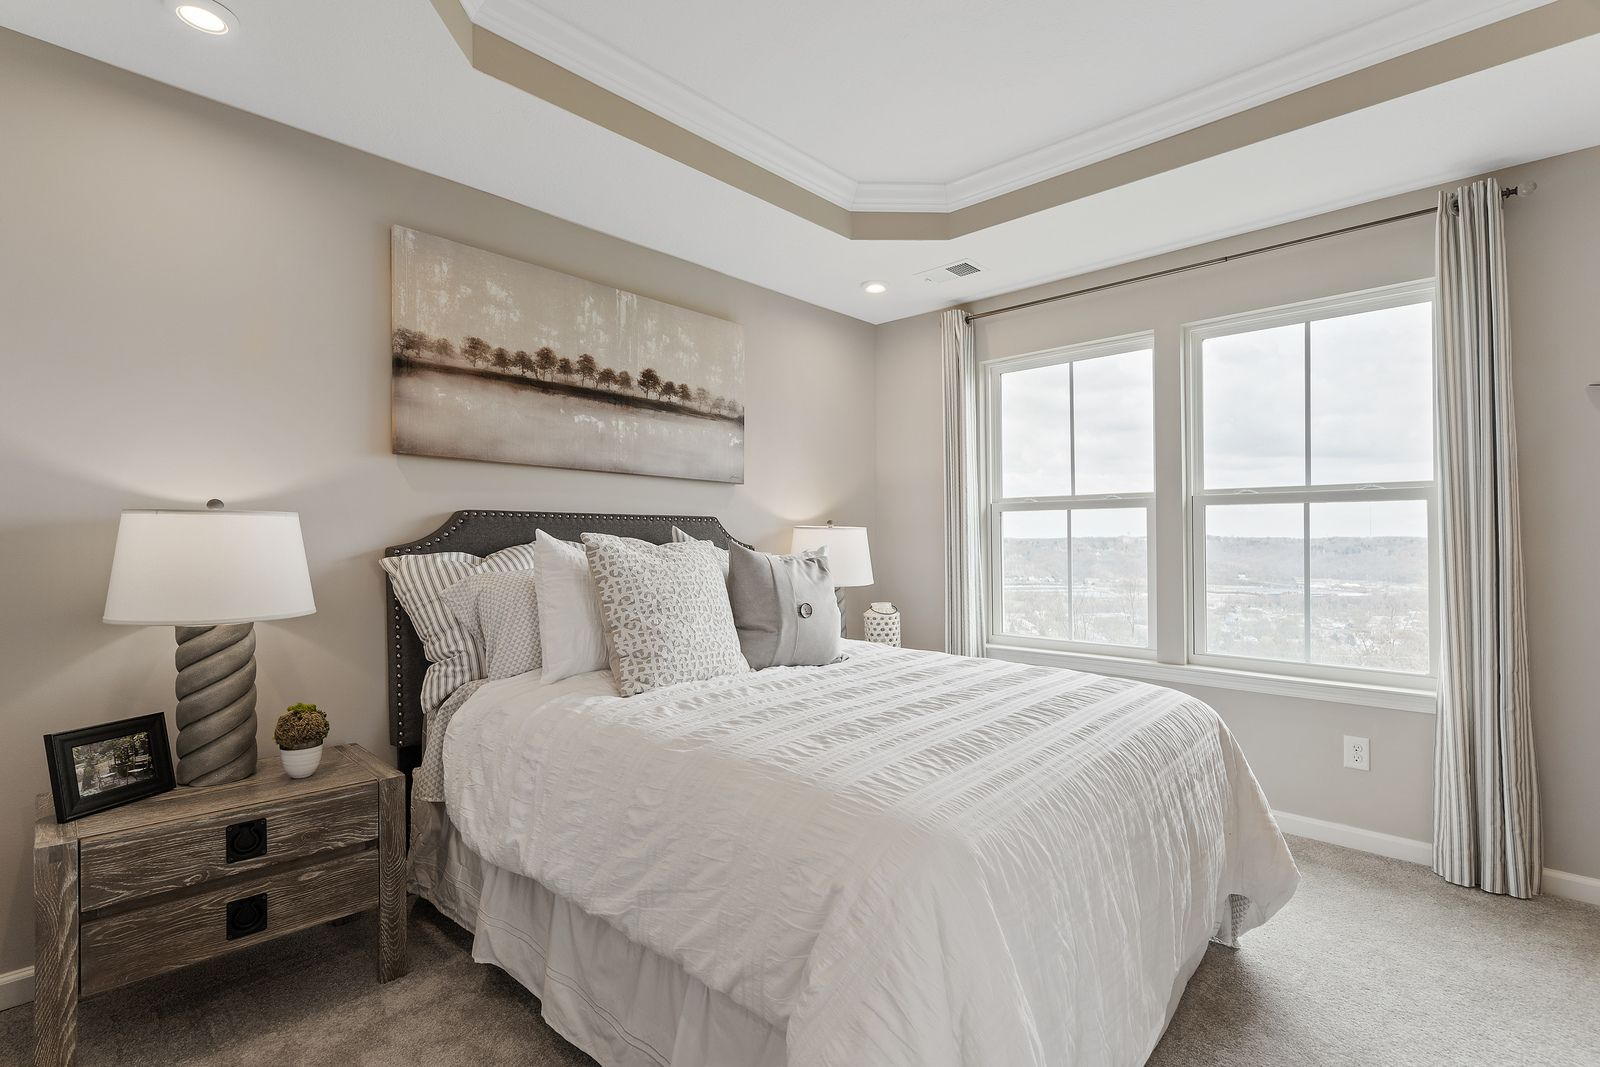 Bedroom featured in the Beethoven By Ryan Homes in Philadelphia, NJ